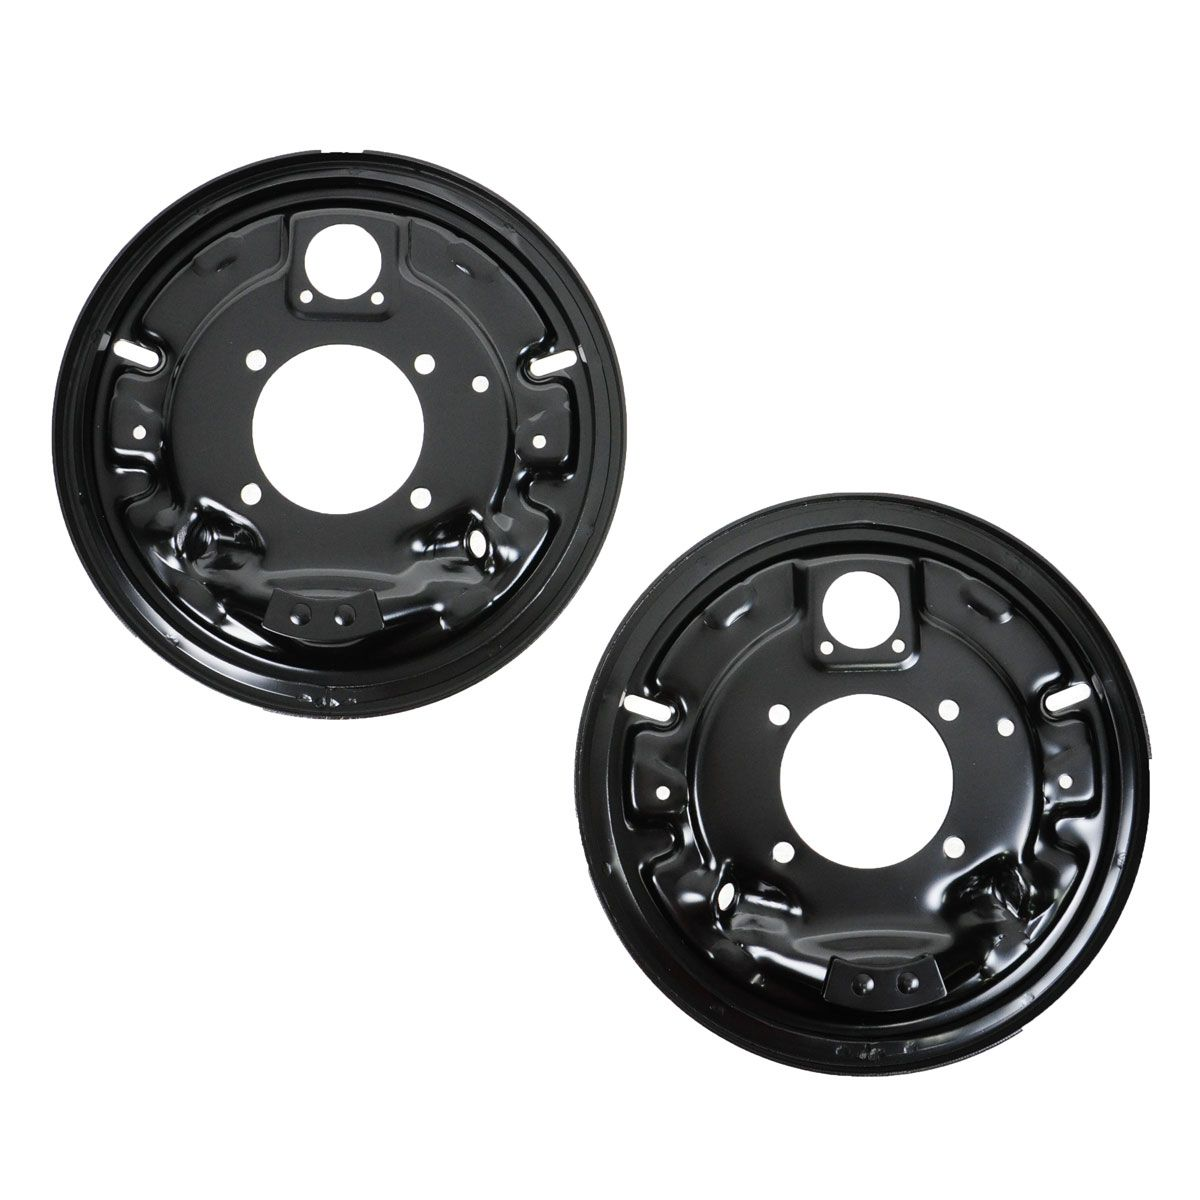 Chevy Truck Brake Backing Plate : Rear brake backing plates pair set of for chevy c k